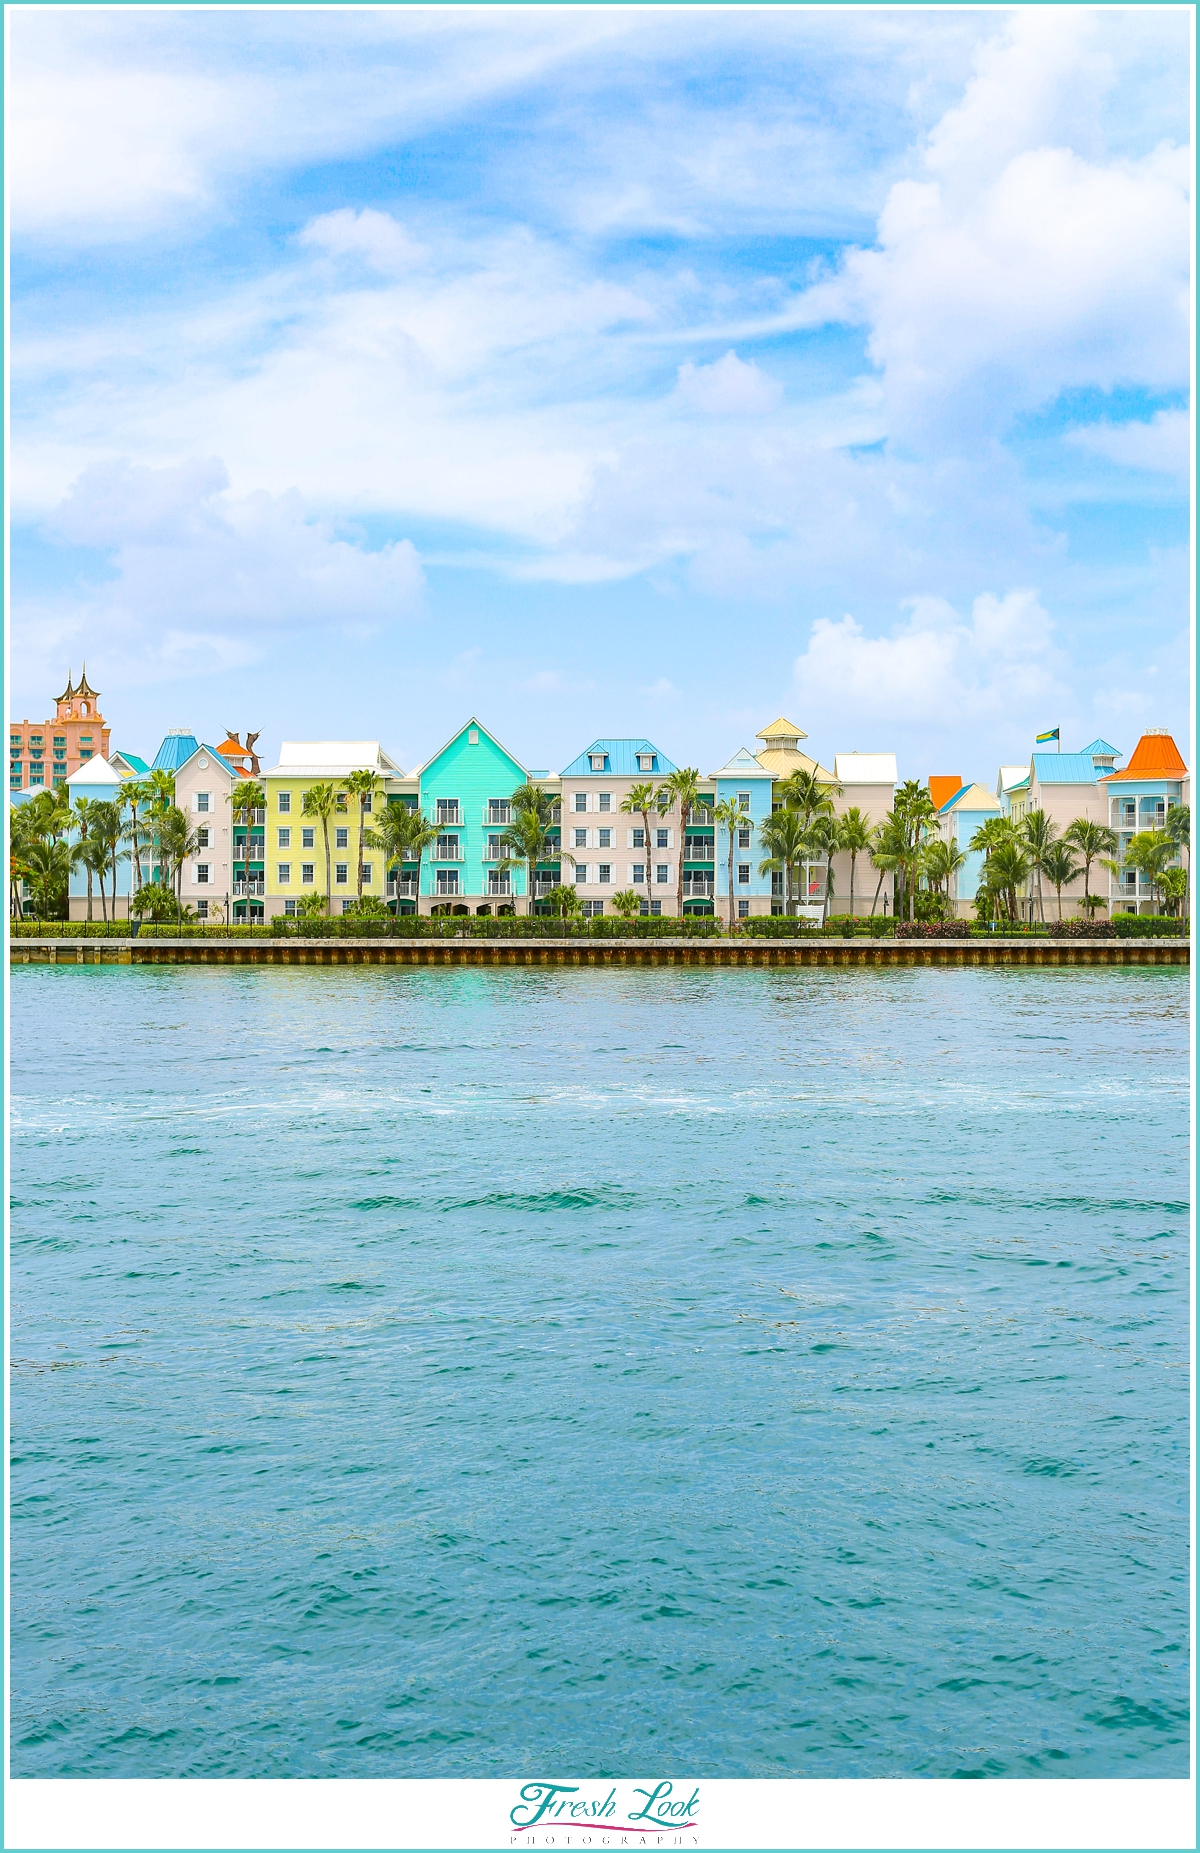 colorful vacation houses on the water